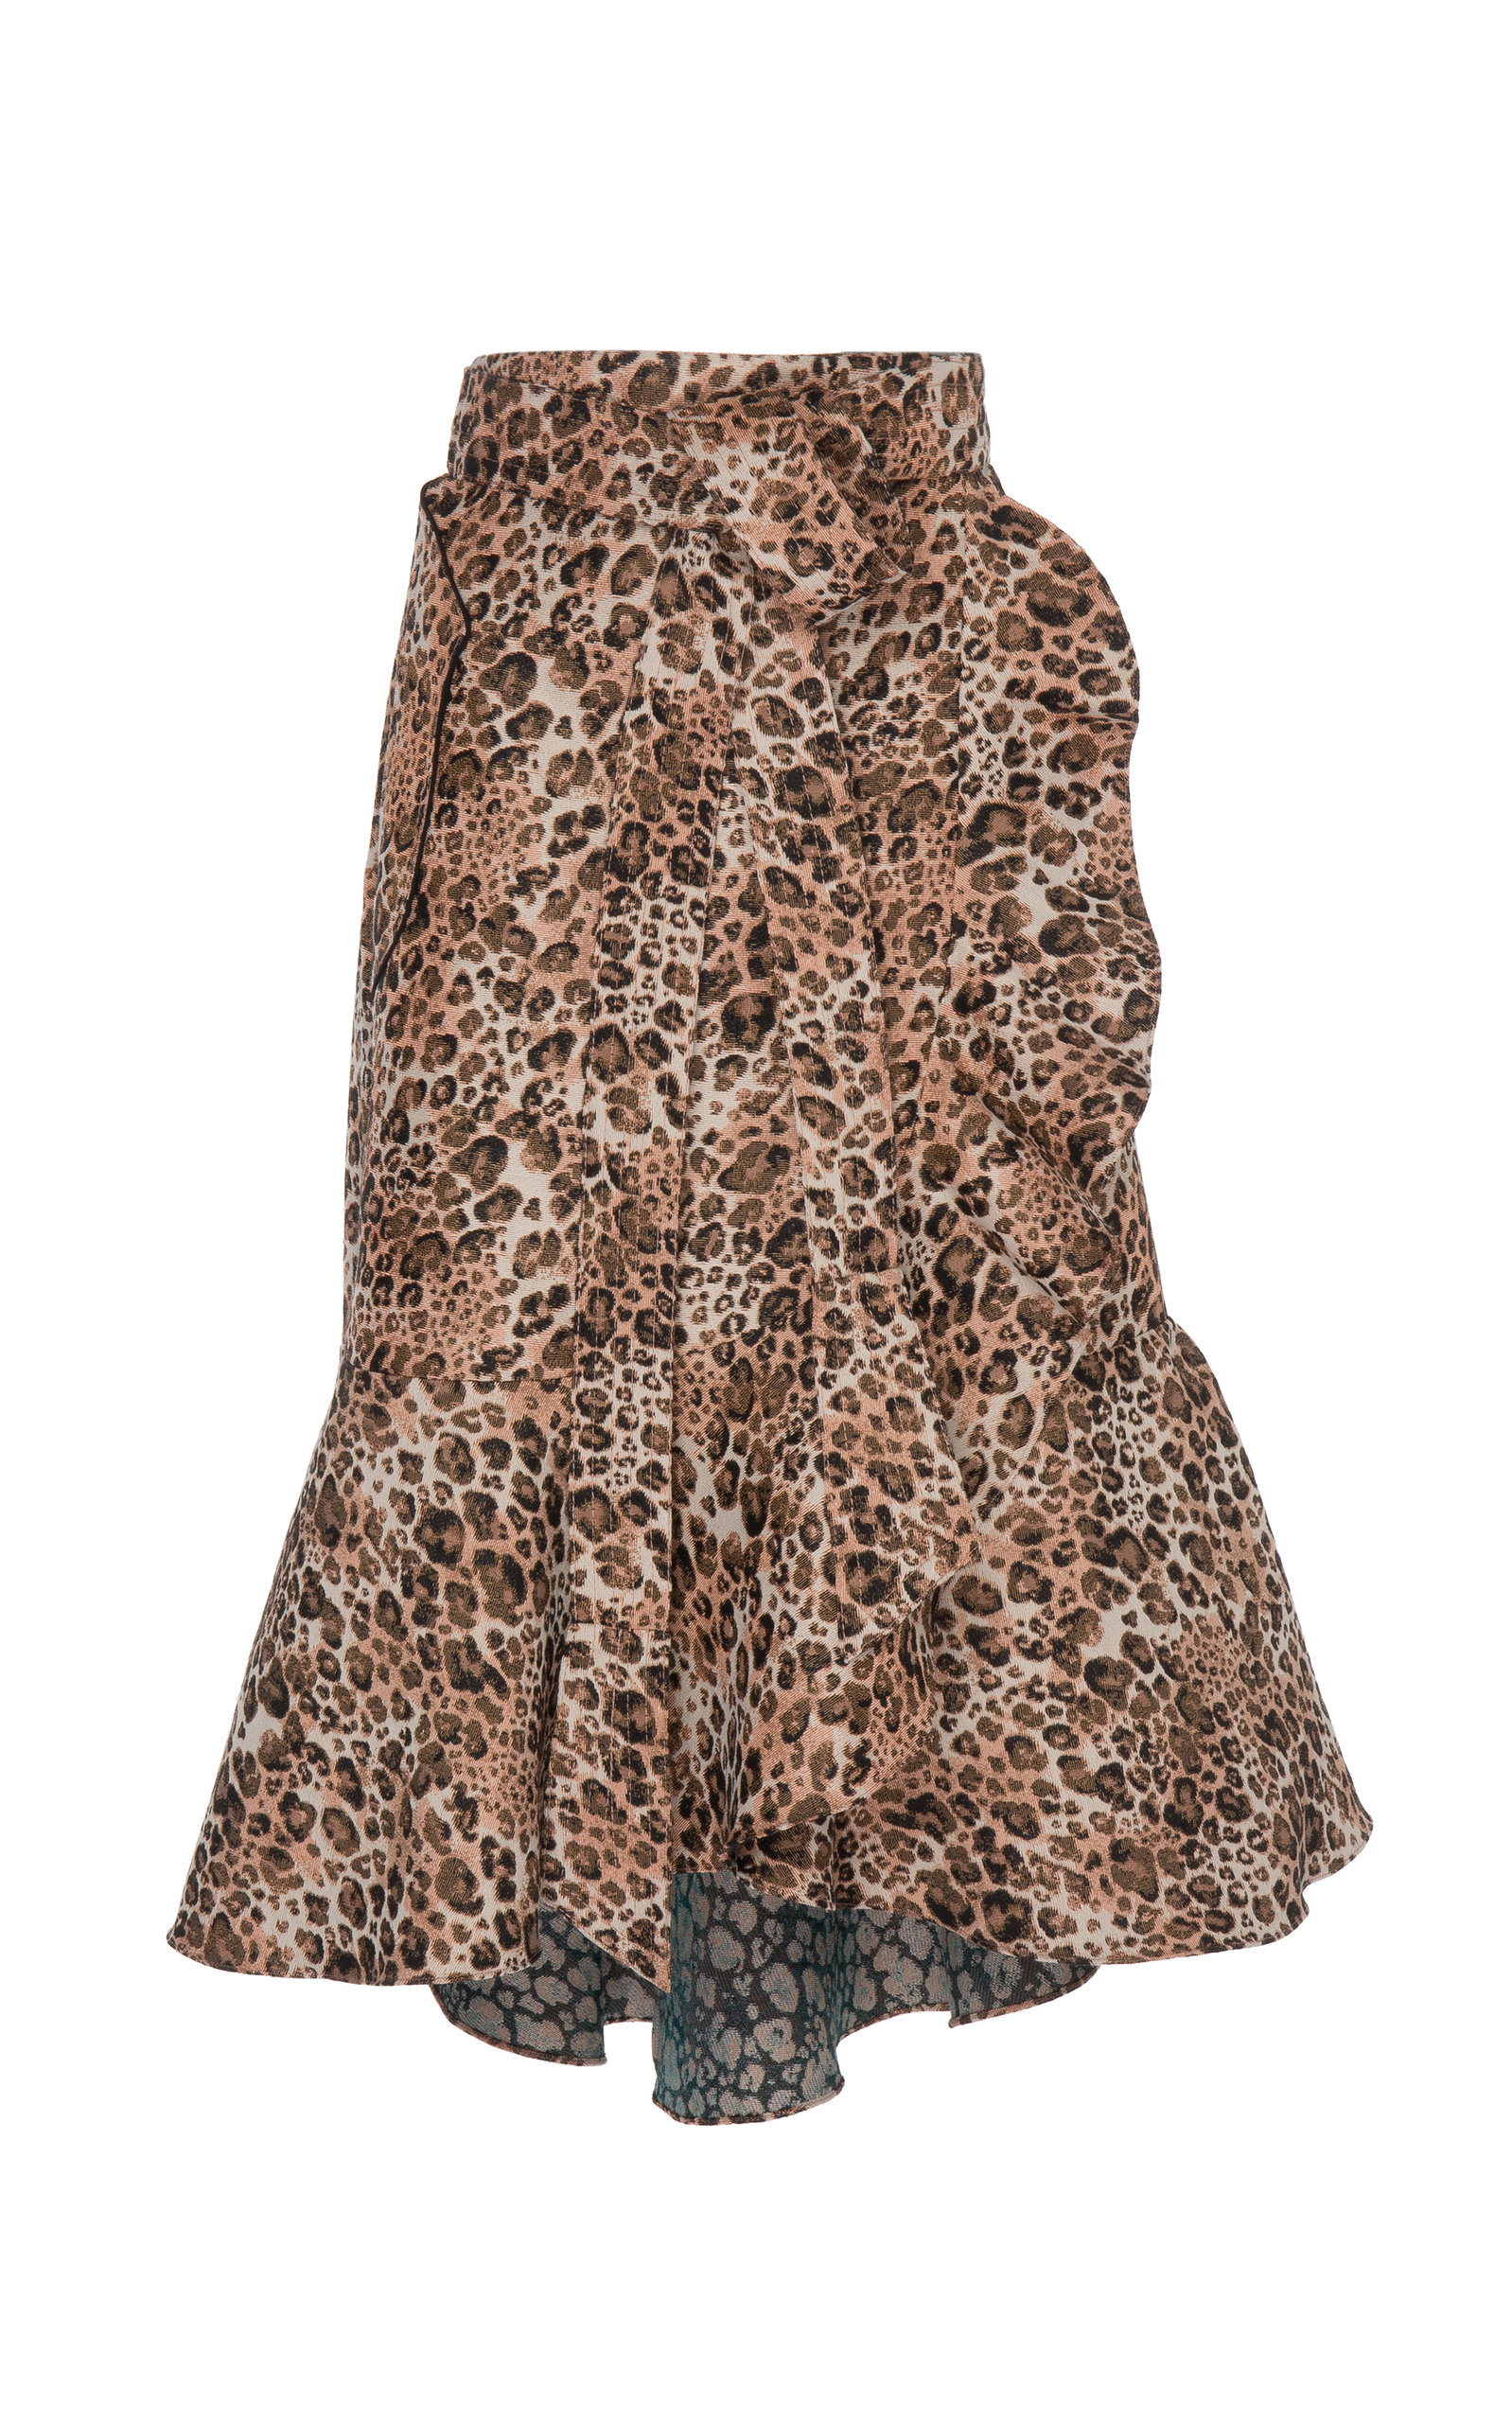 afc858f83b6470 Cynical Attitude Printed A-line Crepe Wrap Skirt by Johanna Ortiz ...